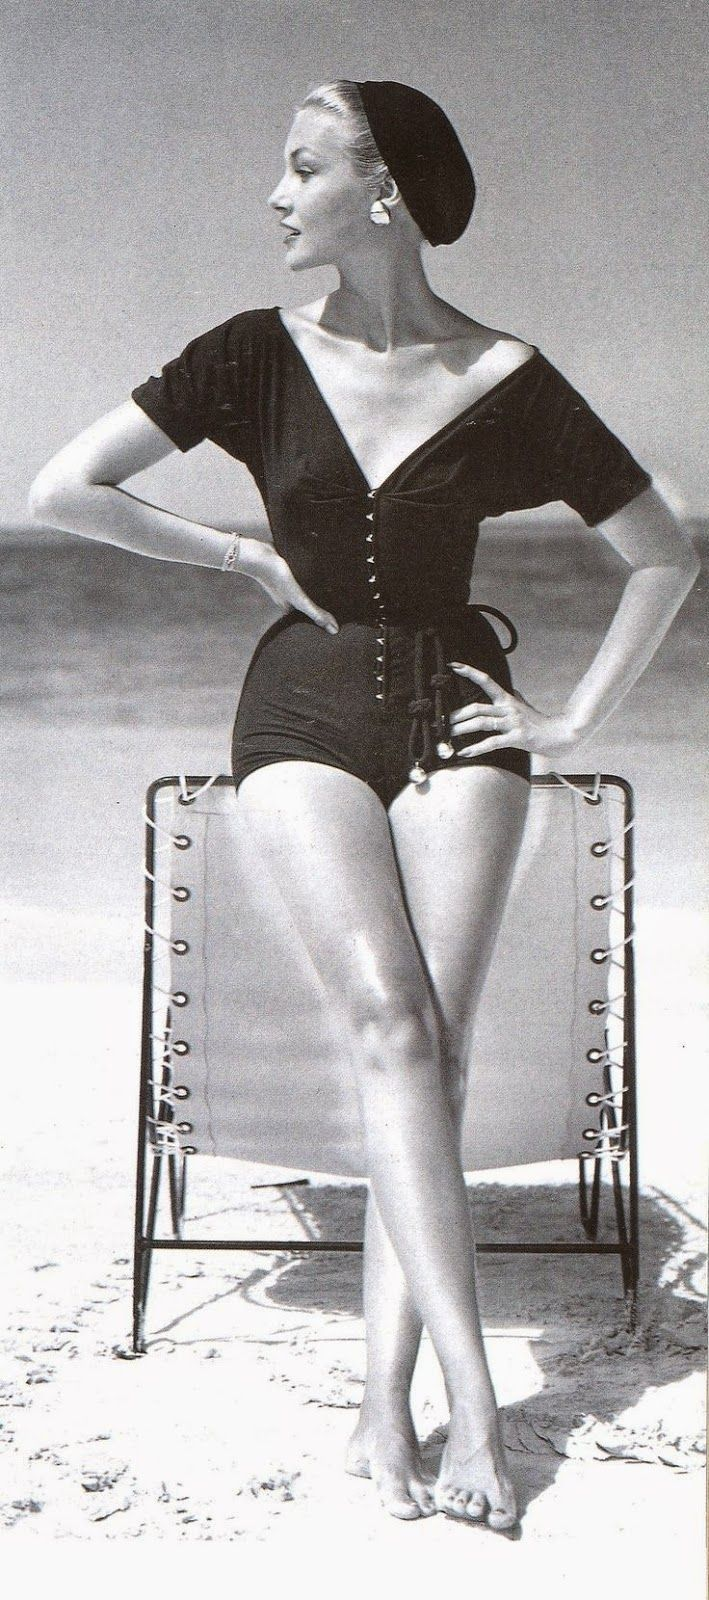 Knit bathing suit by Claire McCardell